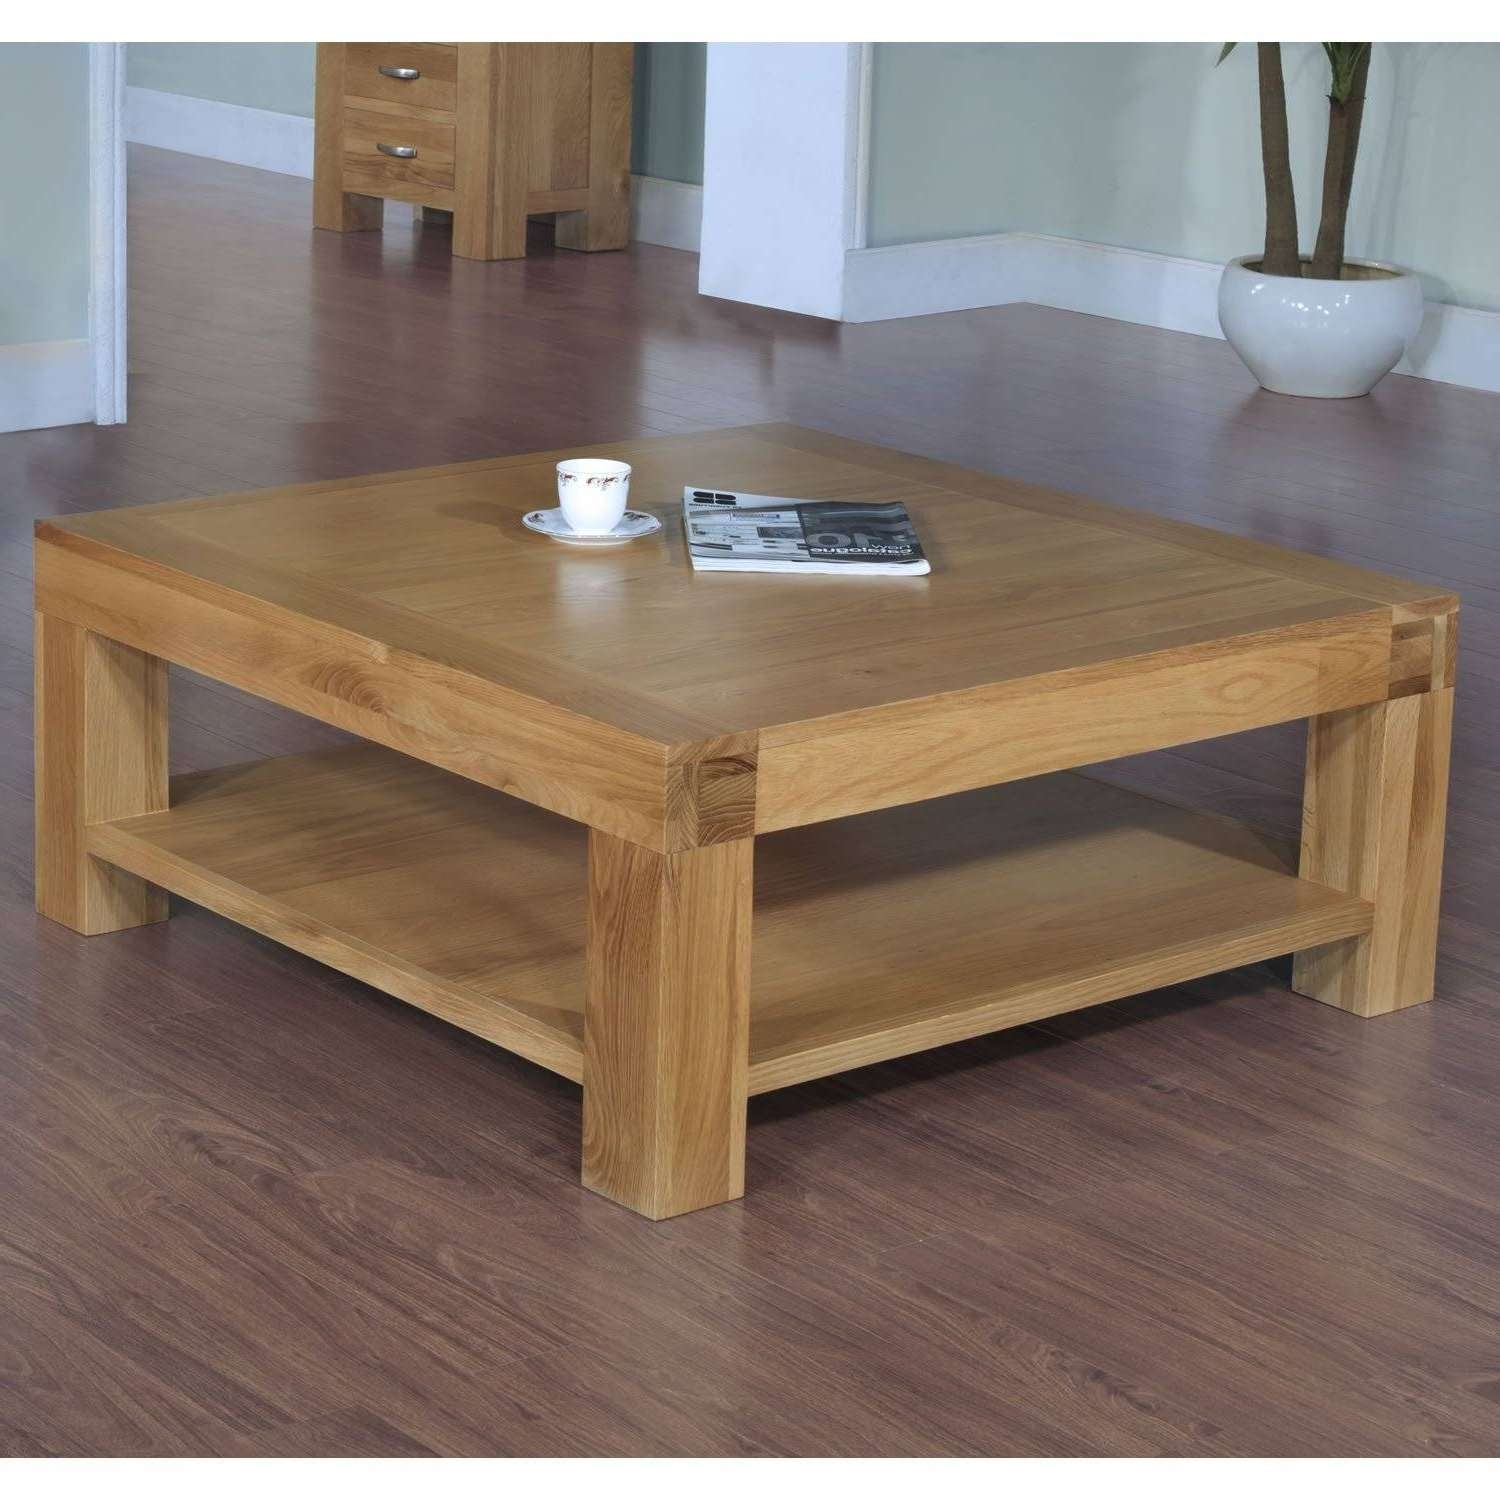 Glass Coffee Krusin Square Coffee Table In Oak With Glass Top In 2018 Square Oak Coffee Tables (View 10 of 20)